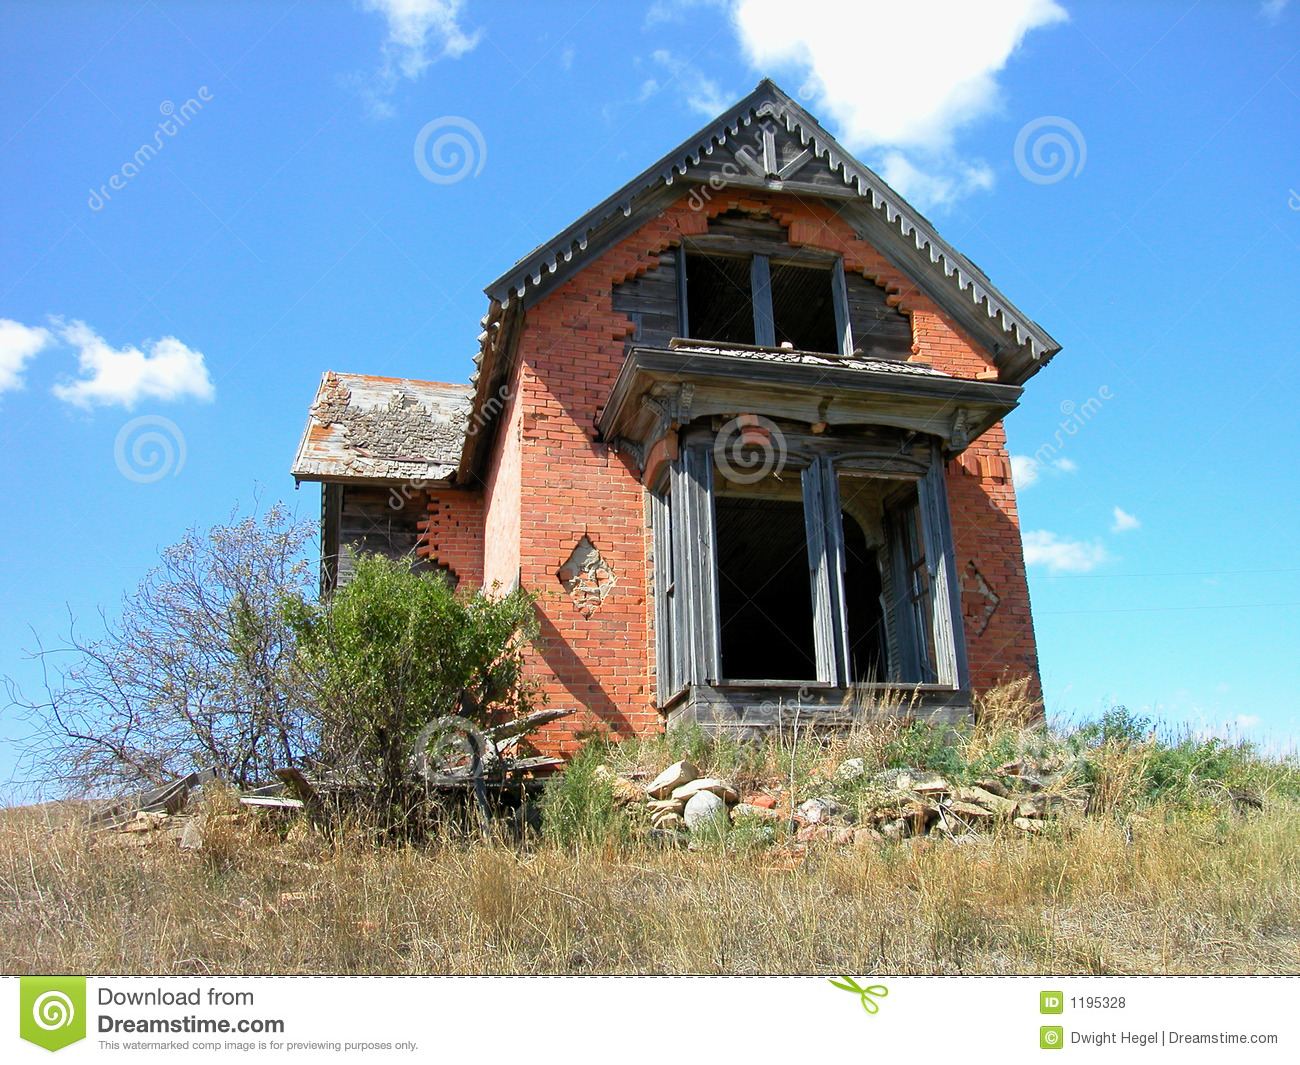 Antique Dilapidated Brick House Stock Photo Image 1195328